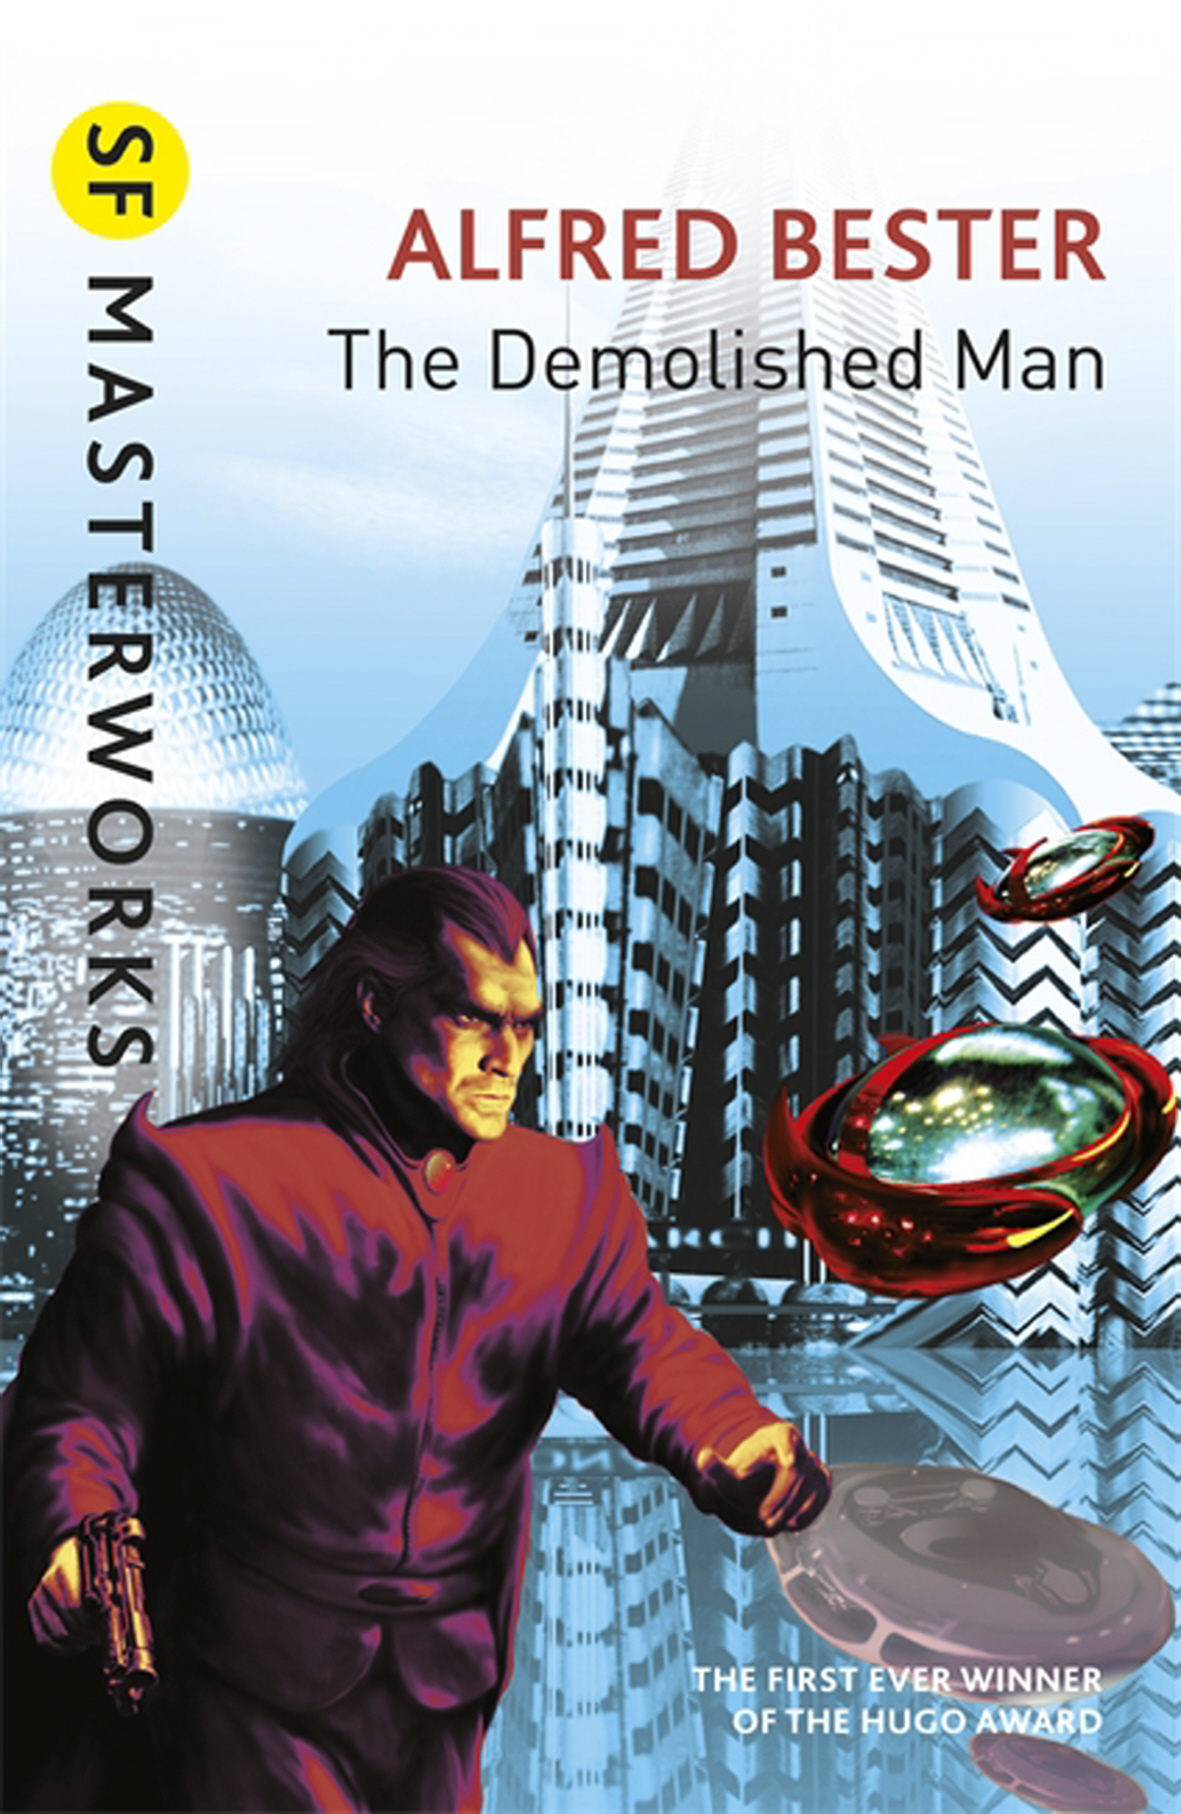 The Demolished Man by Alfred Bester - Imagine a society with telepaths including counter-measures and corporate misuse. A great parallel for surveillance and data hacking.